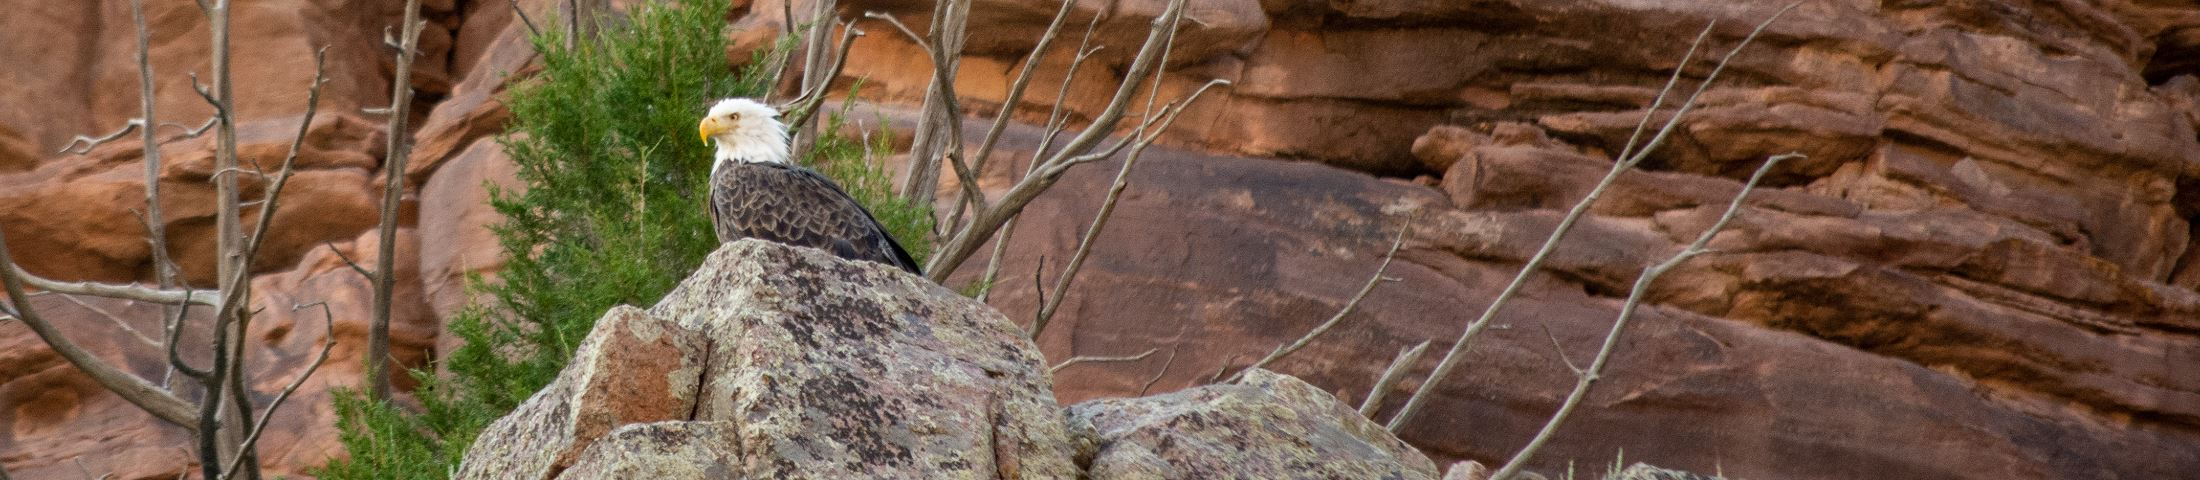 Bald Eagle on rock